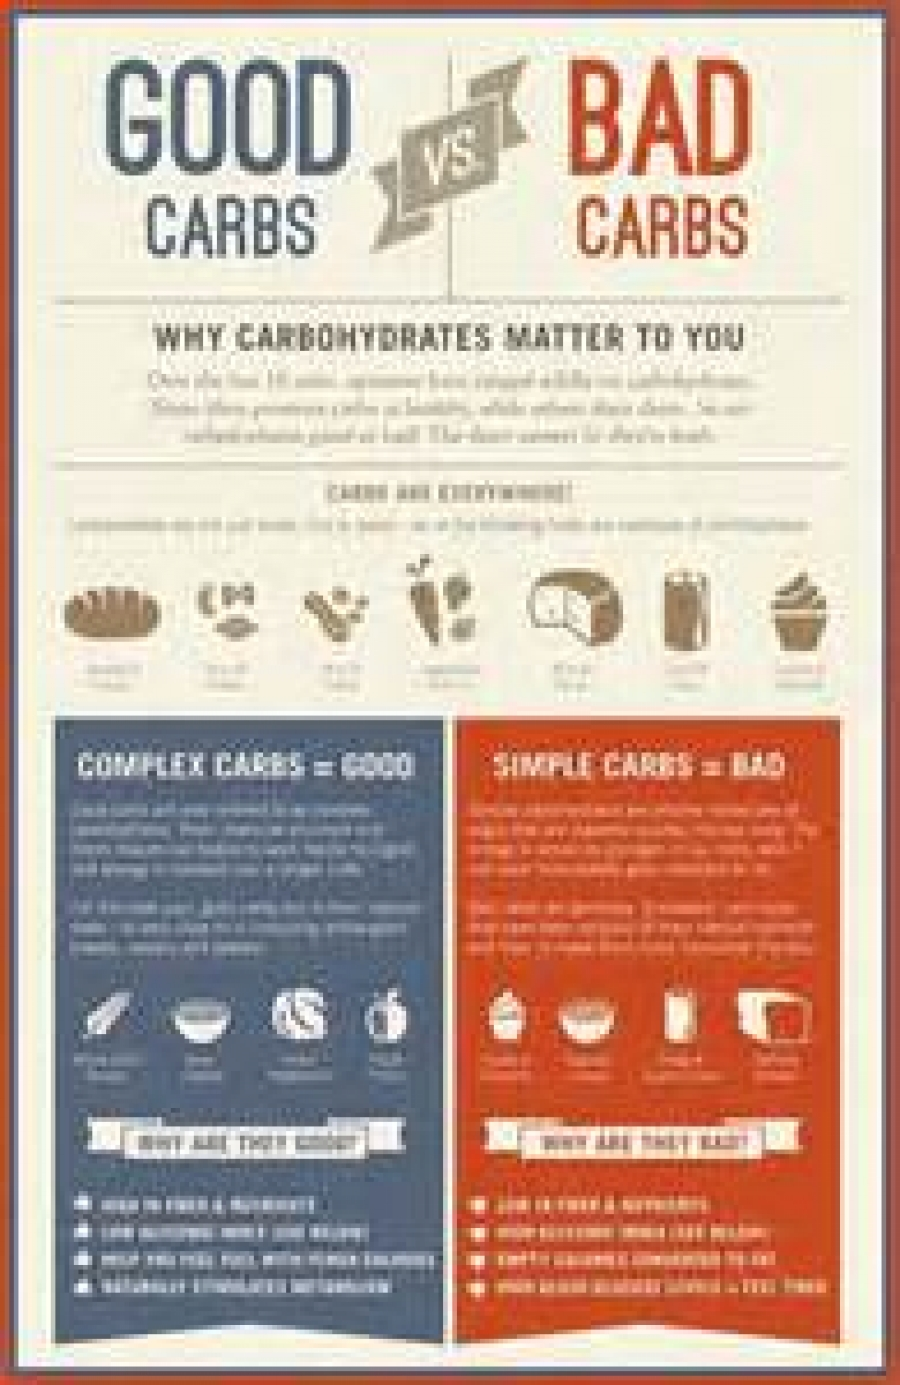 Curious about carbs?